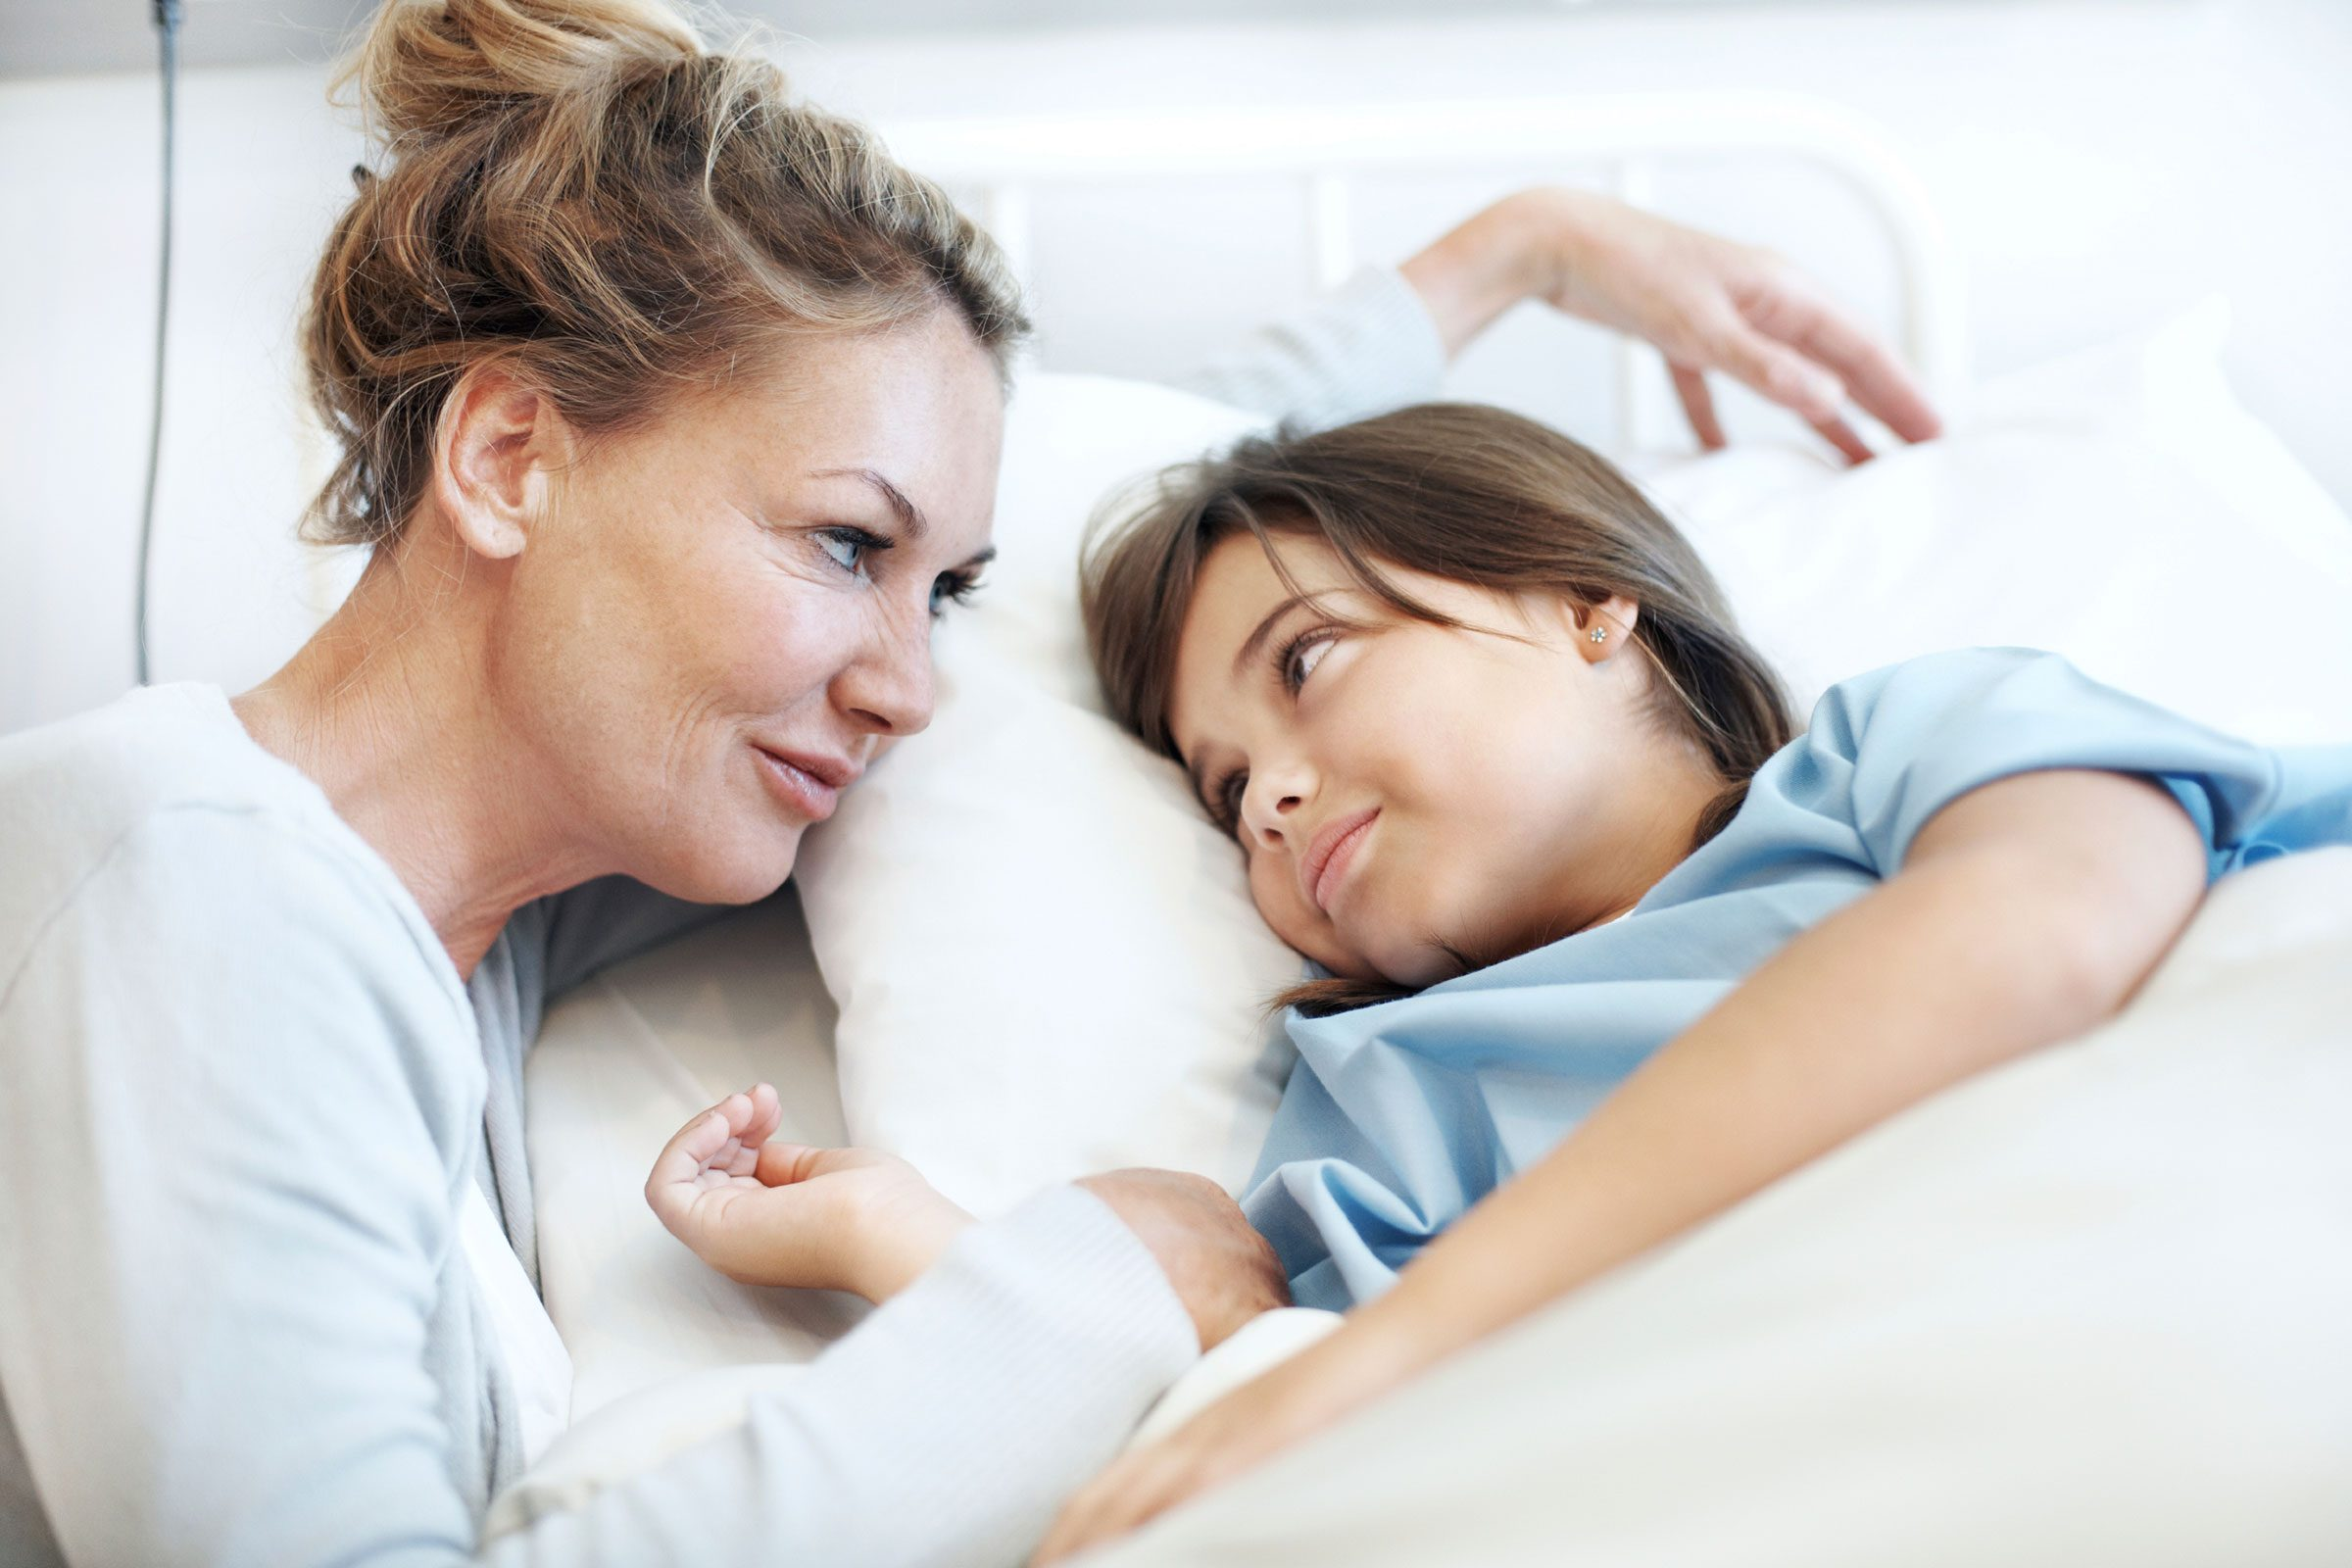 mom looking at daughter in hospital bed